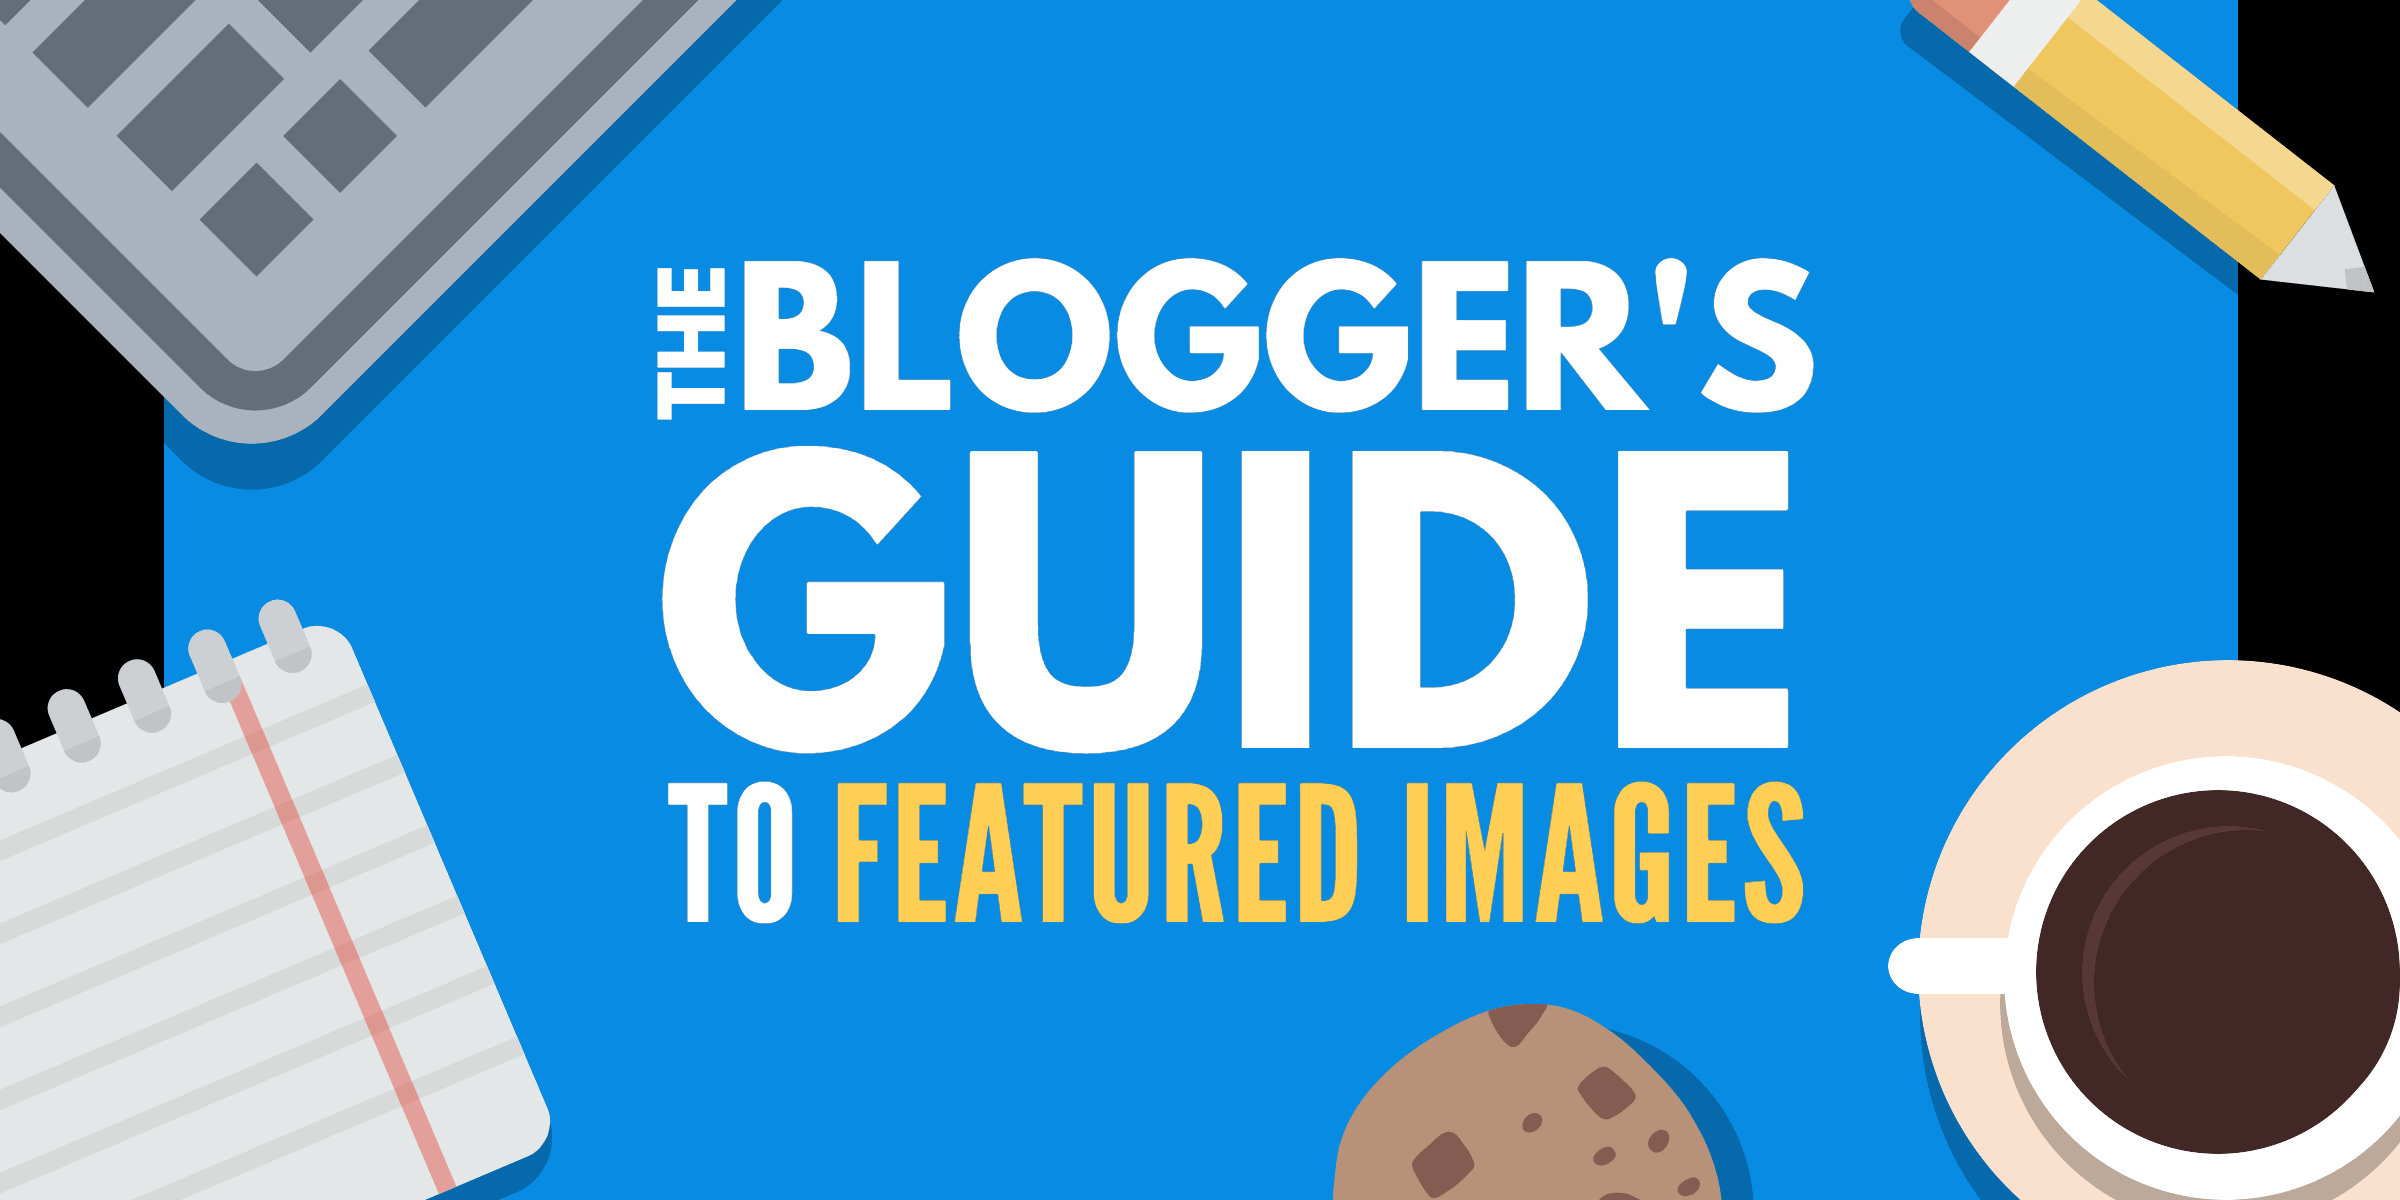 Blogger's guide to featured images